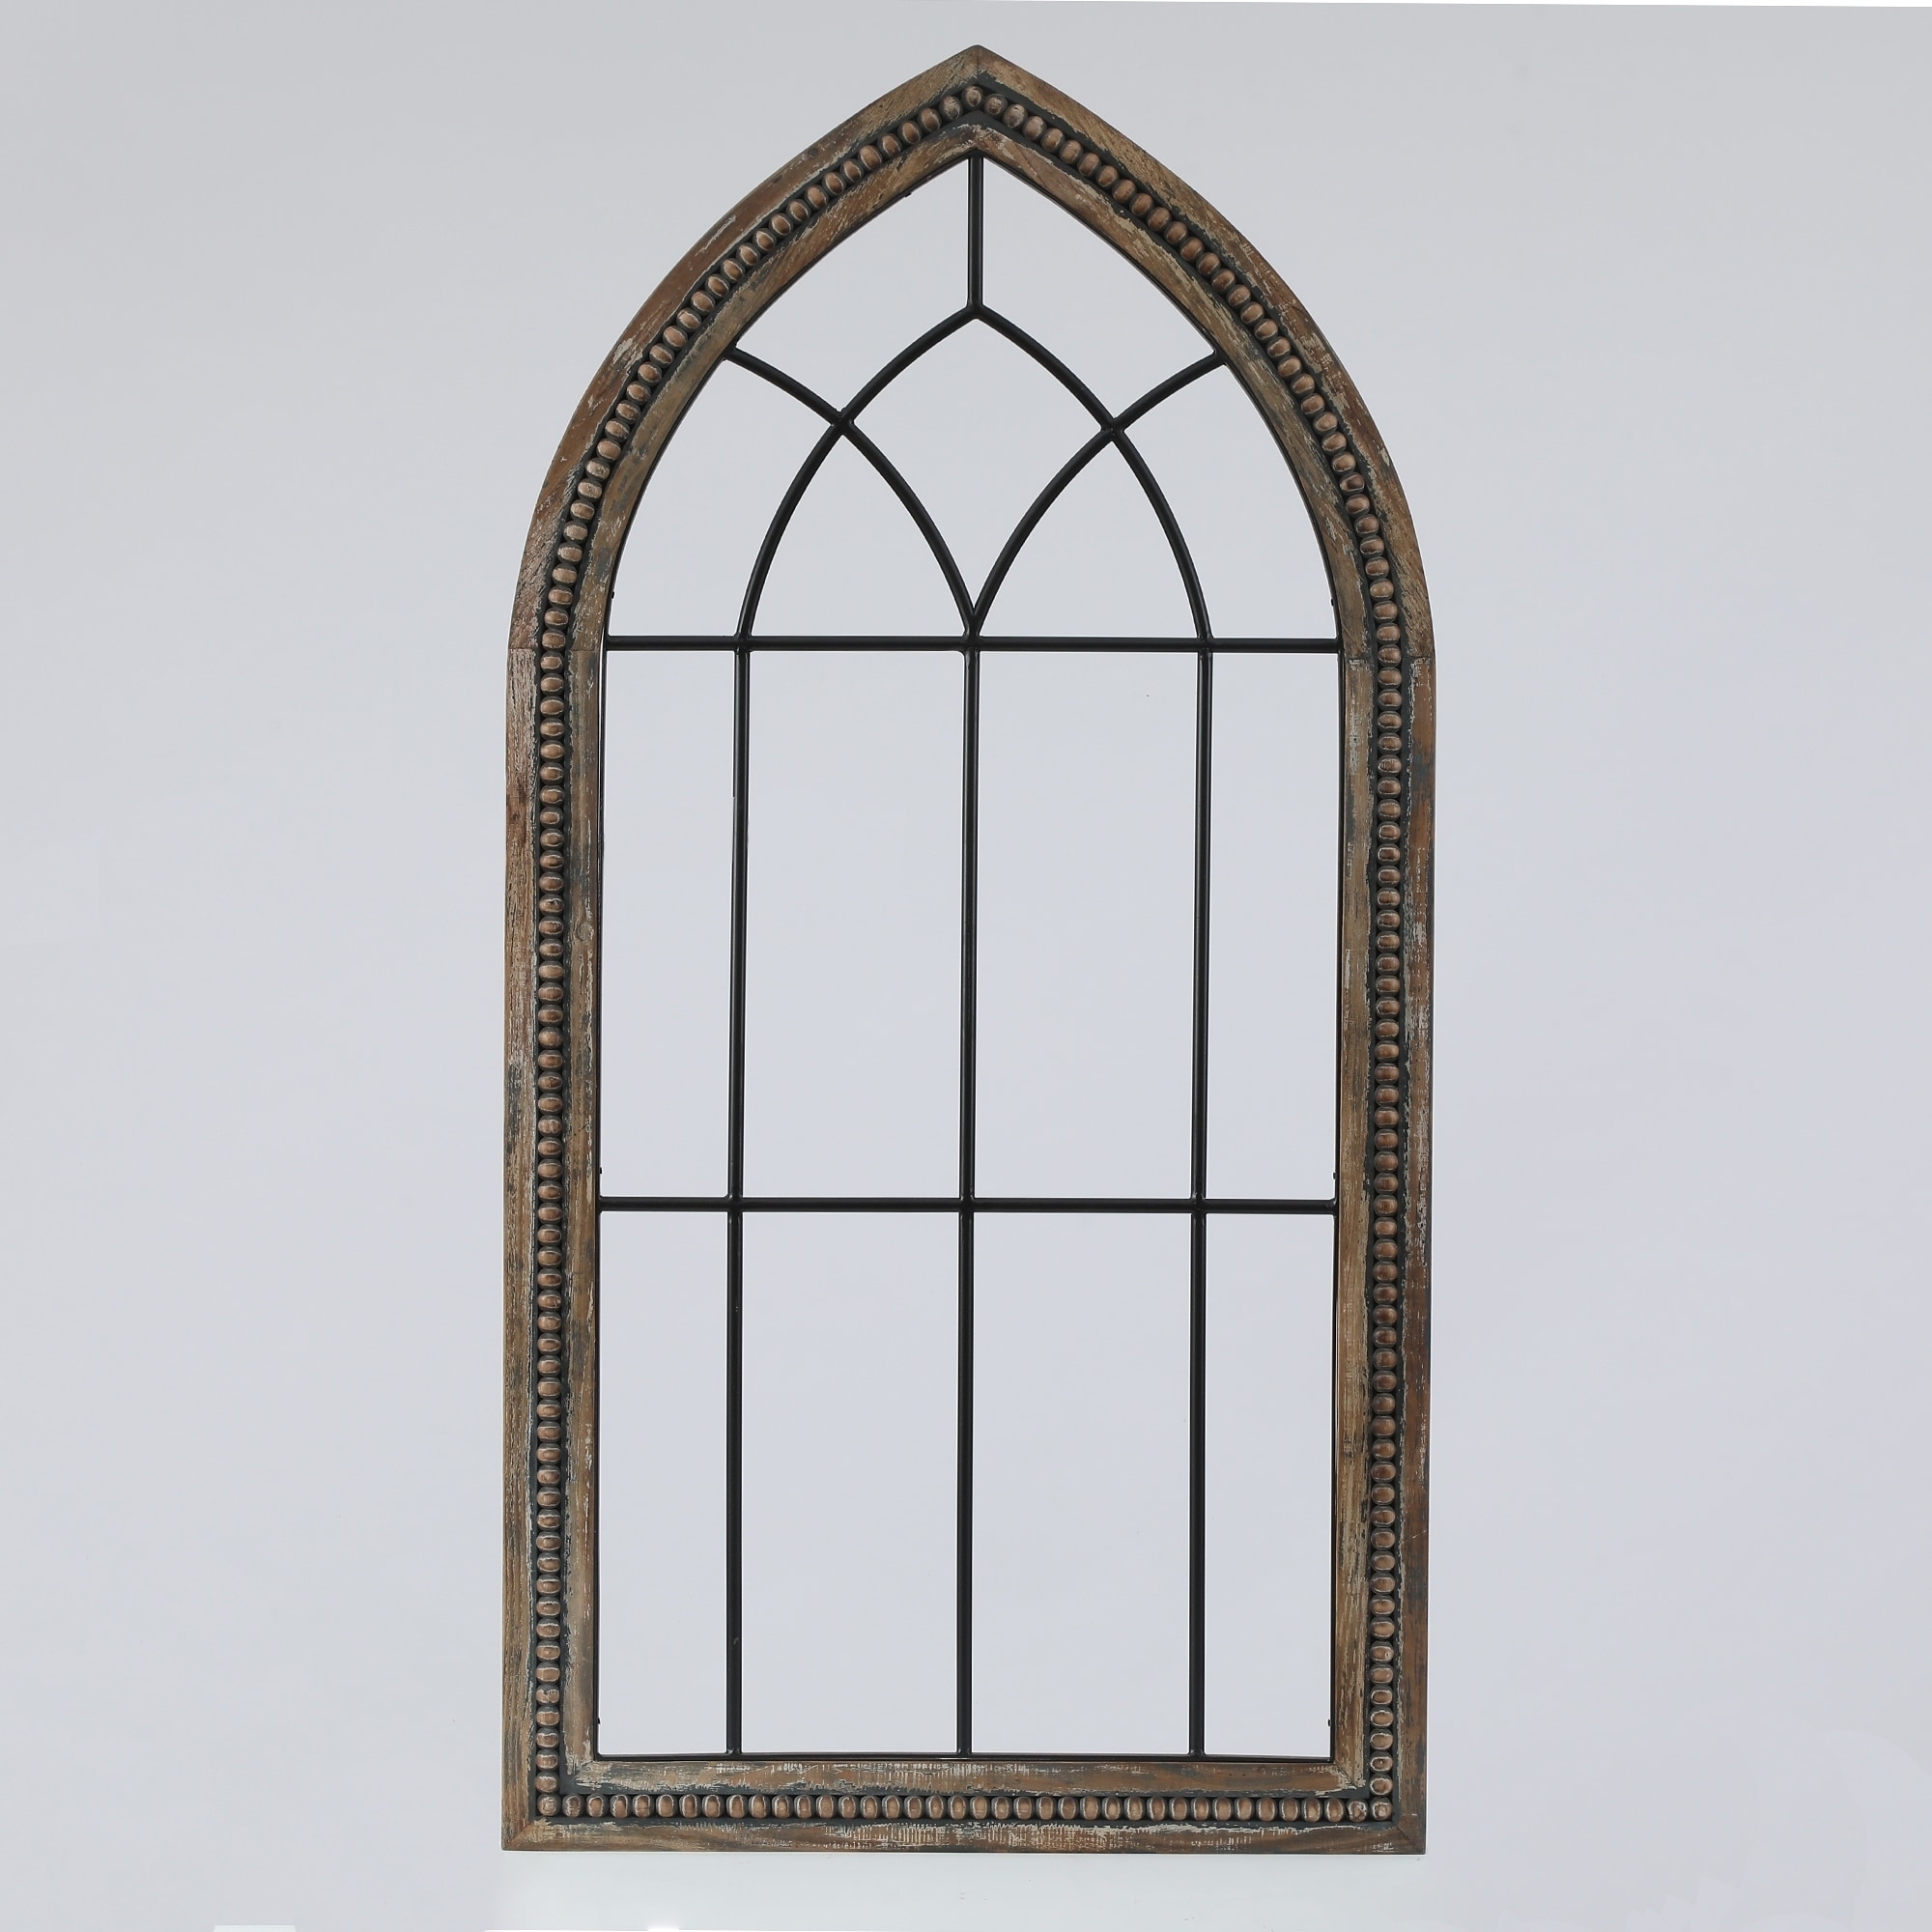 Wood And Metal Cathedral Wall Decor On Sale Overstock 29473875